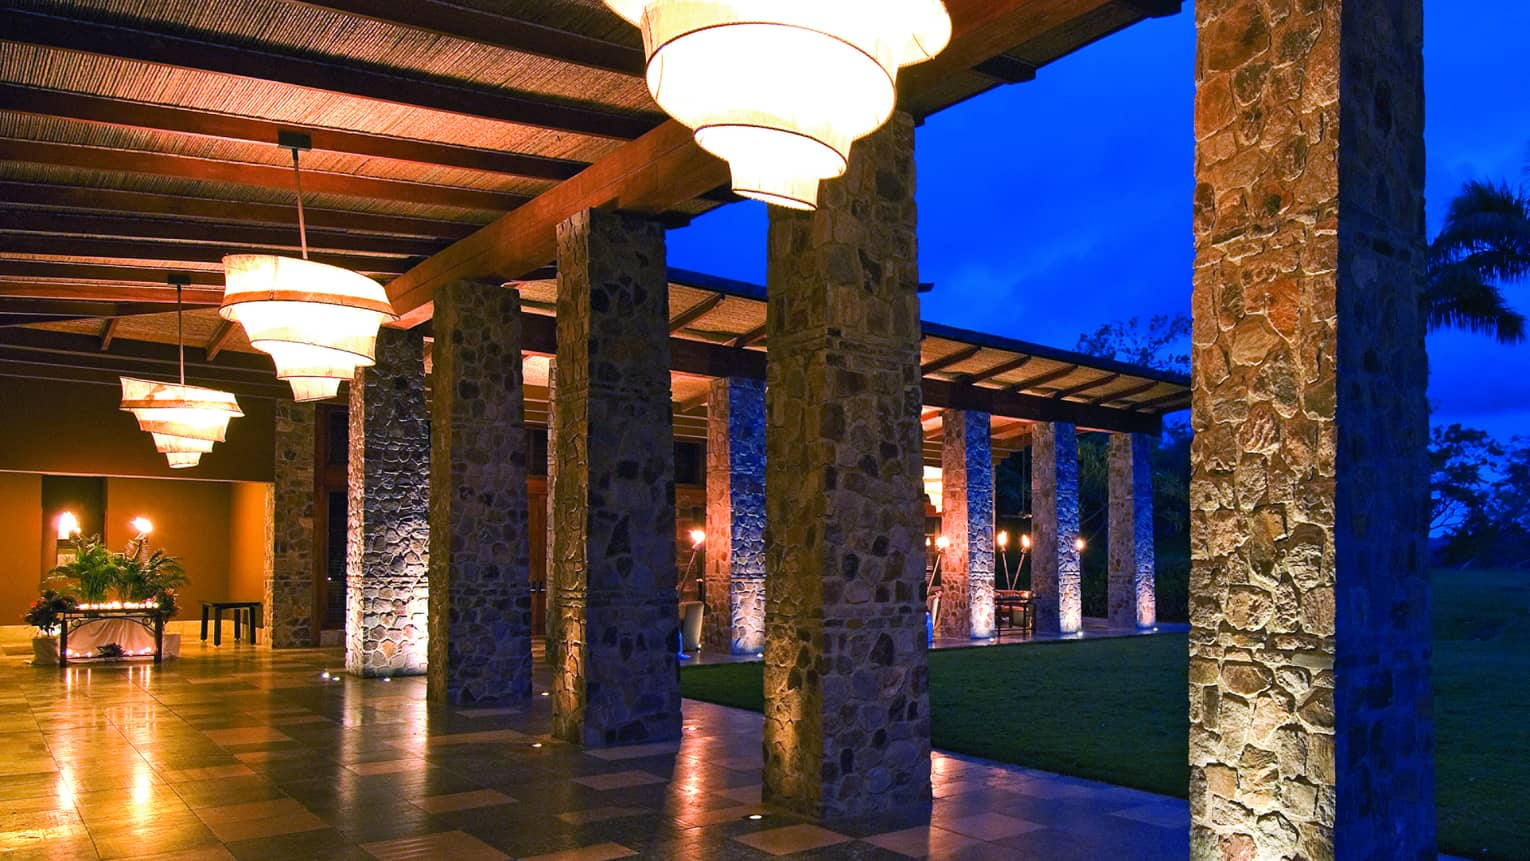 Large chandeliers hang from roof over outdoor path lined with stone pillars at night